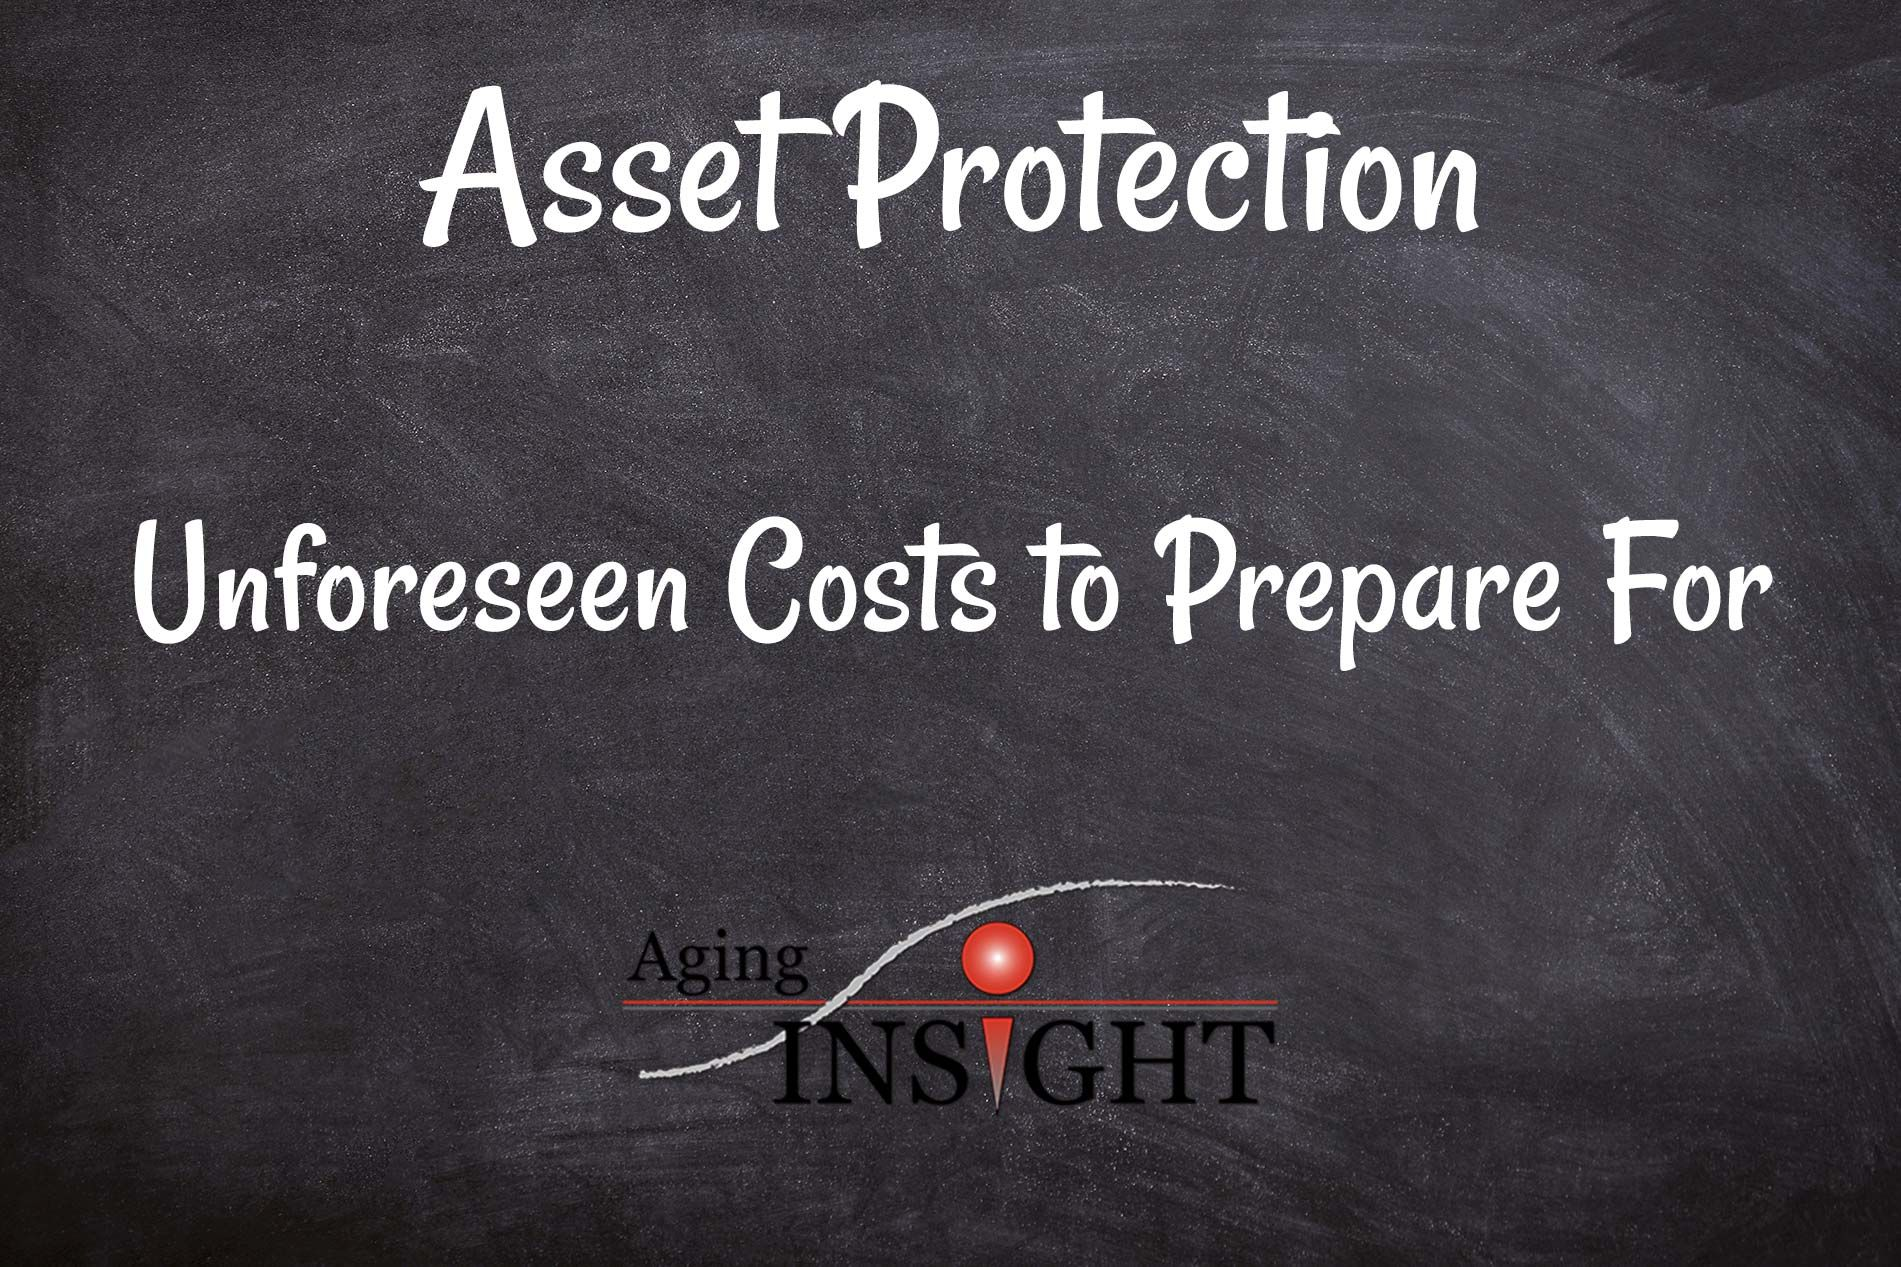 Asset Protection And Unforeseen Costs To Prepare For With Images